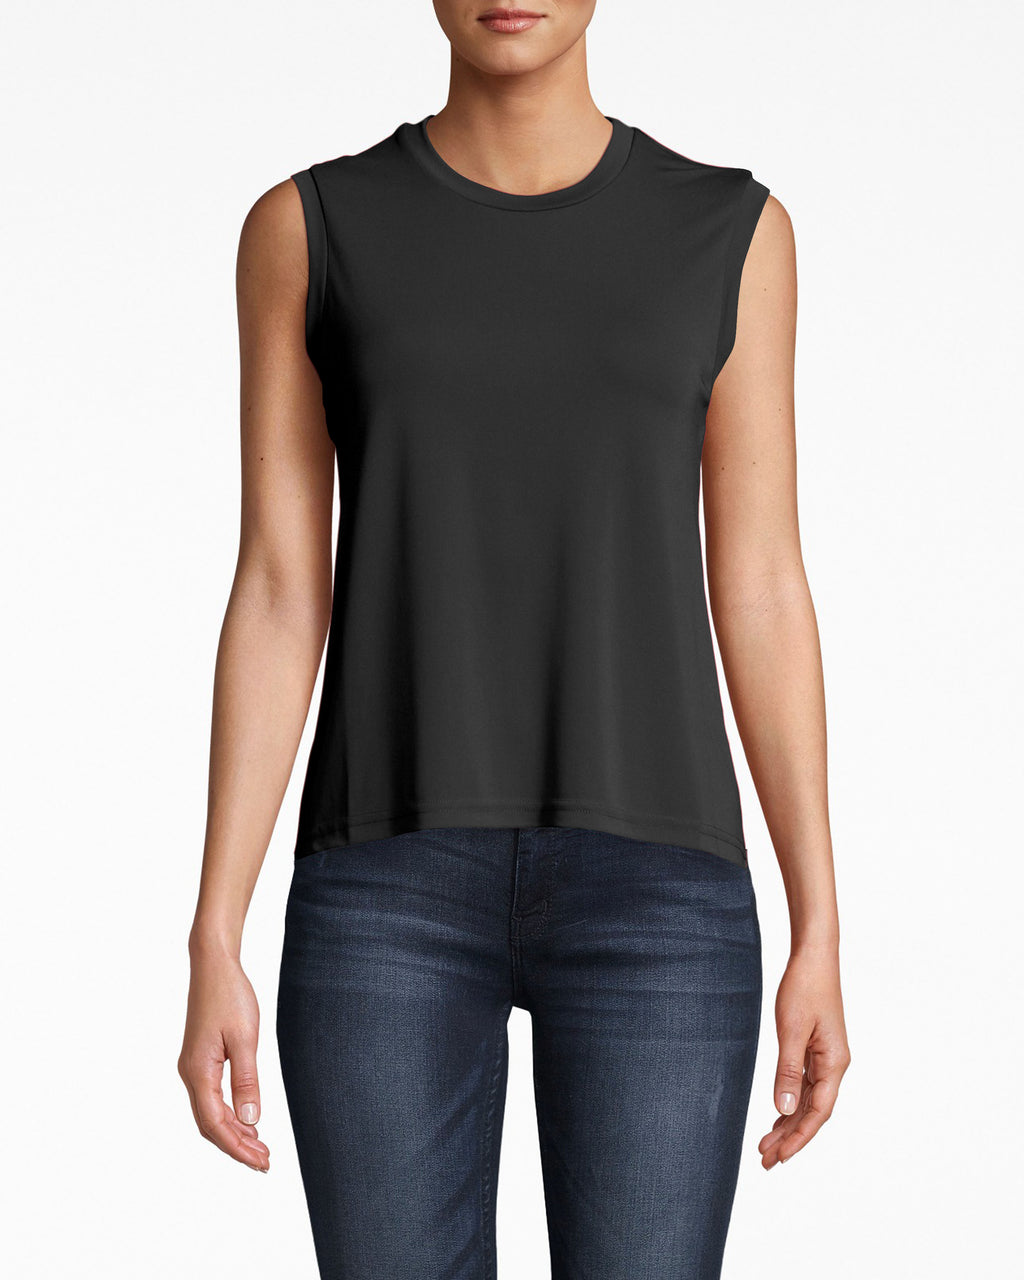 AQ10060 - STRETCHY MATTE JERSEY JEWEL NECK TANK - tops - shirts - Versatile: no sleeves, mock neck, and loose fit. Pair this stretchy jersey tank with jeans and your fave booties.